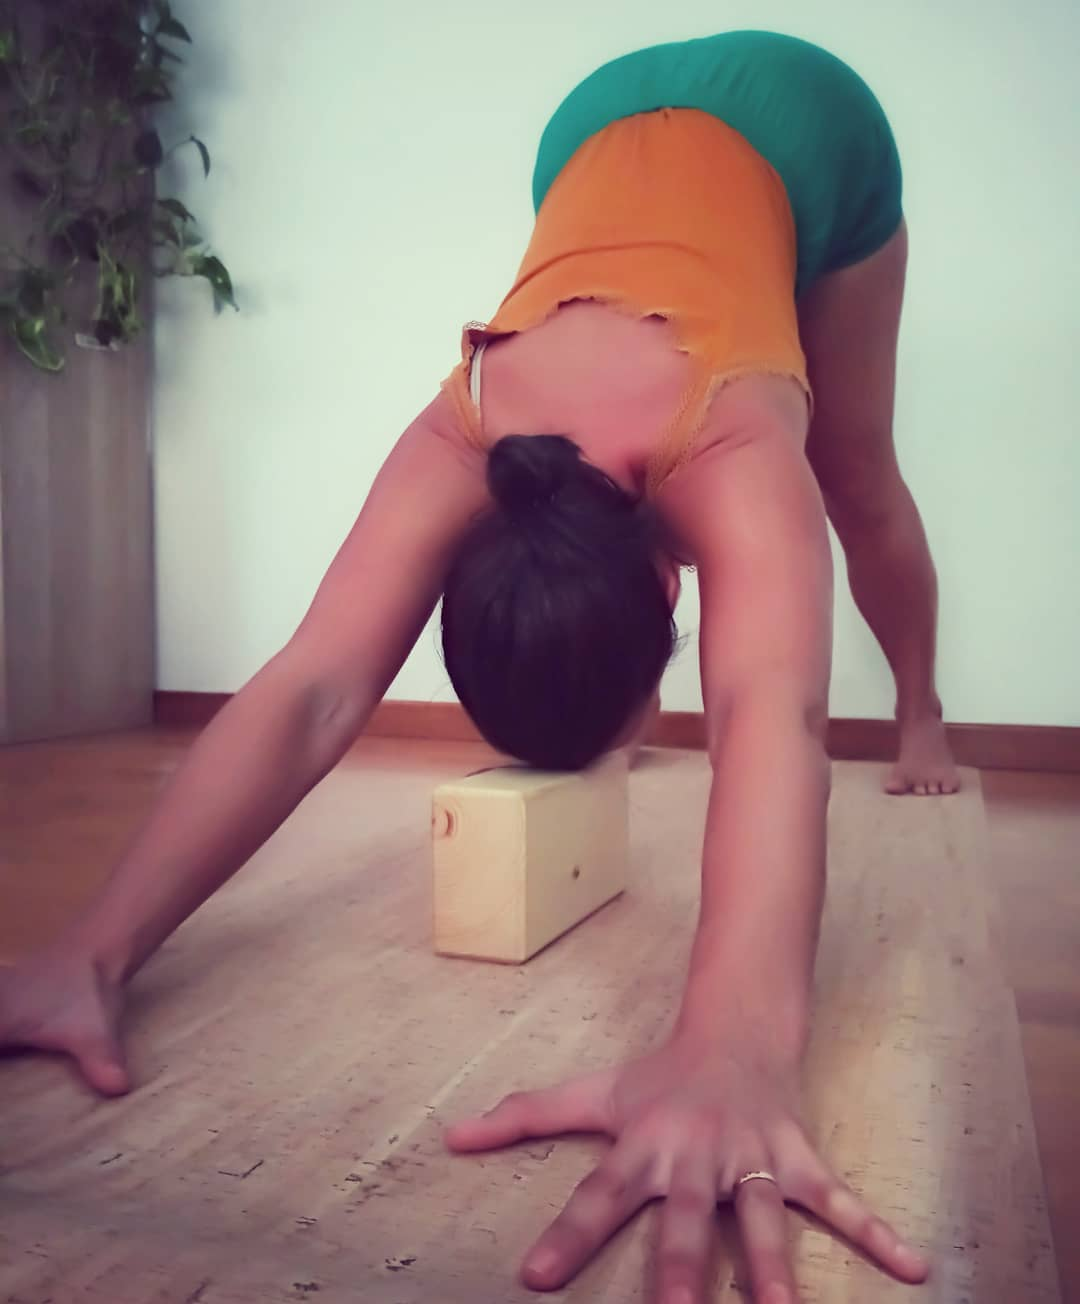 adho mukha with yoga block